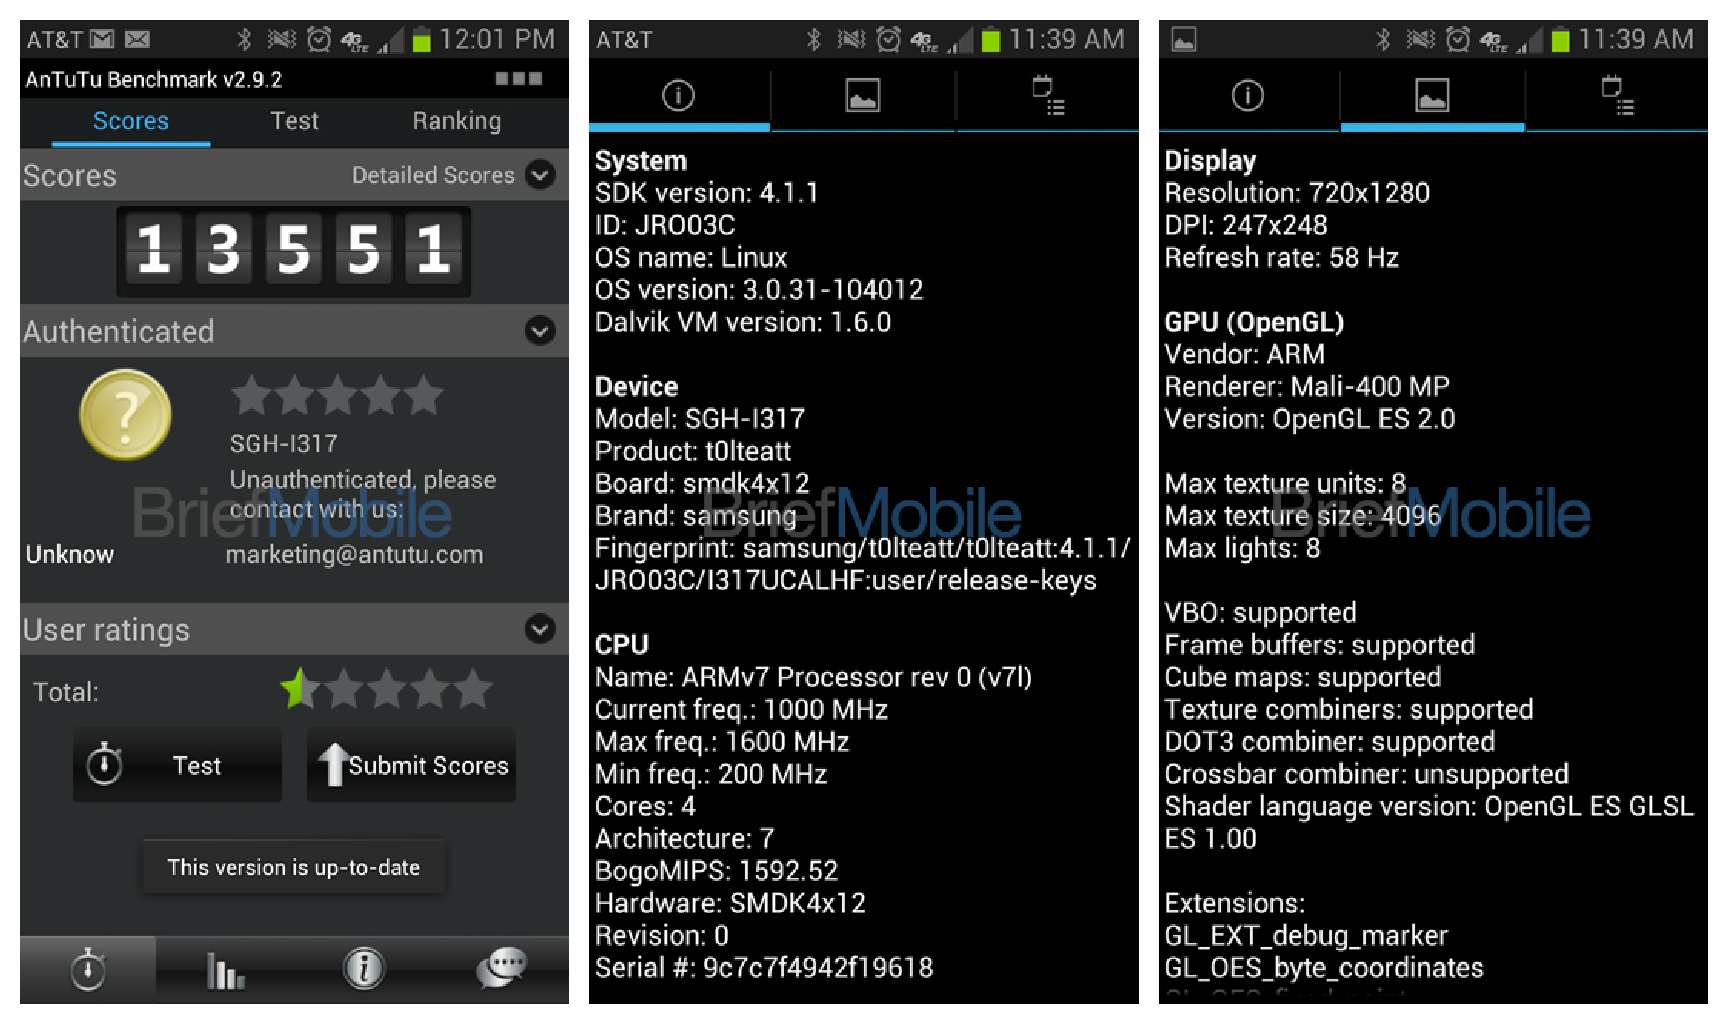 AT&T Galaxy Note 2 Confirmed In Leaked Screenshots ...